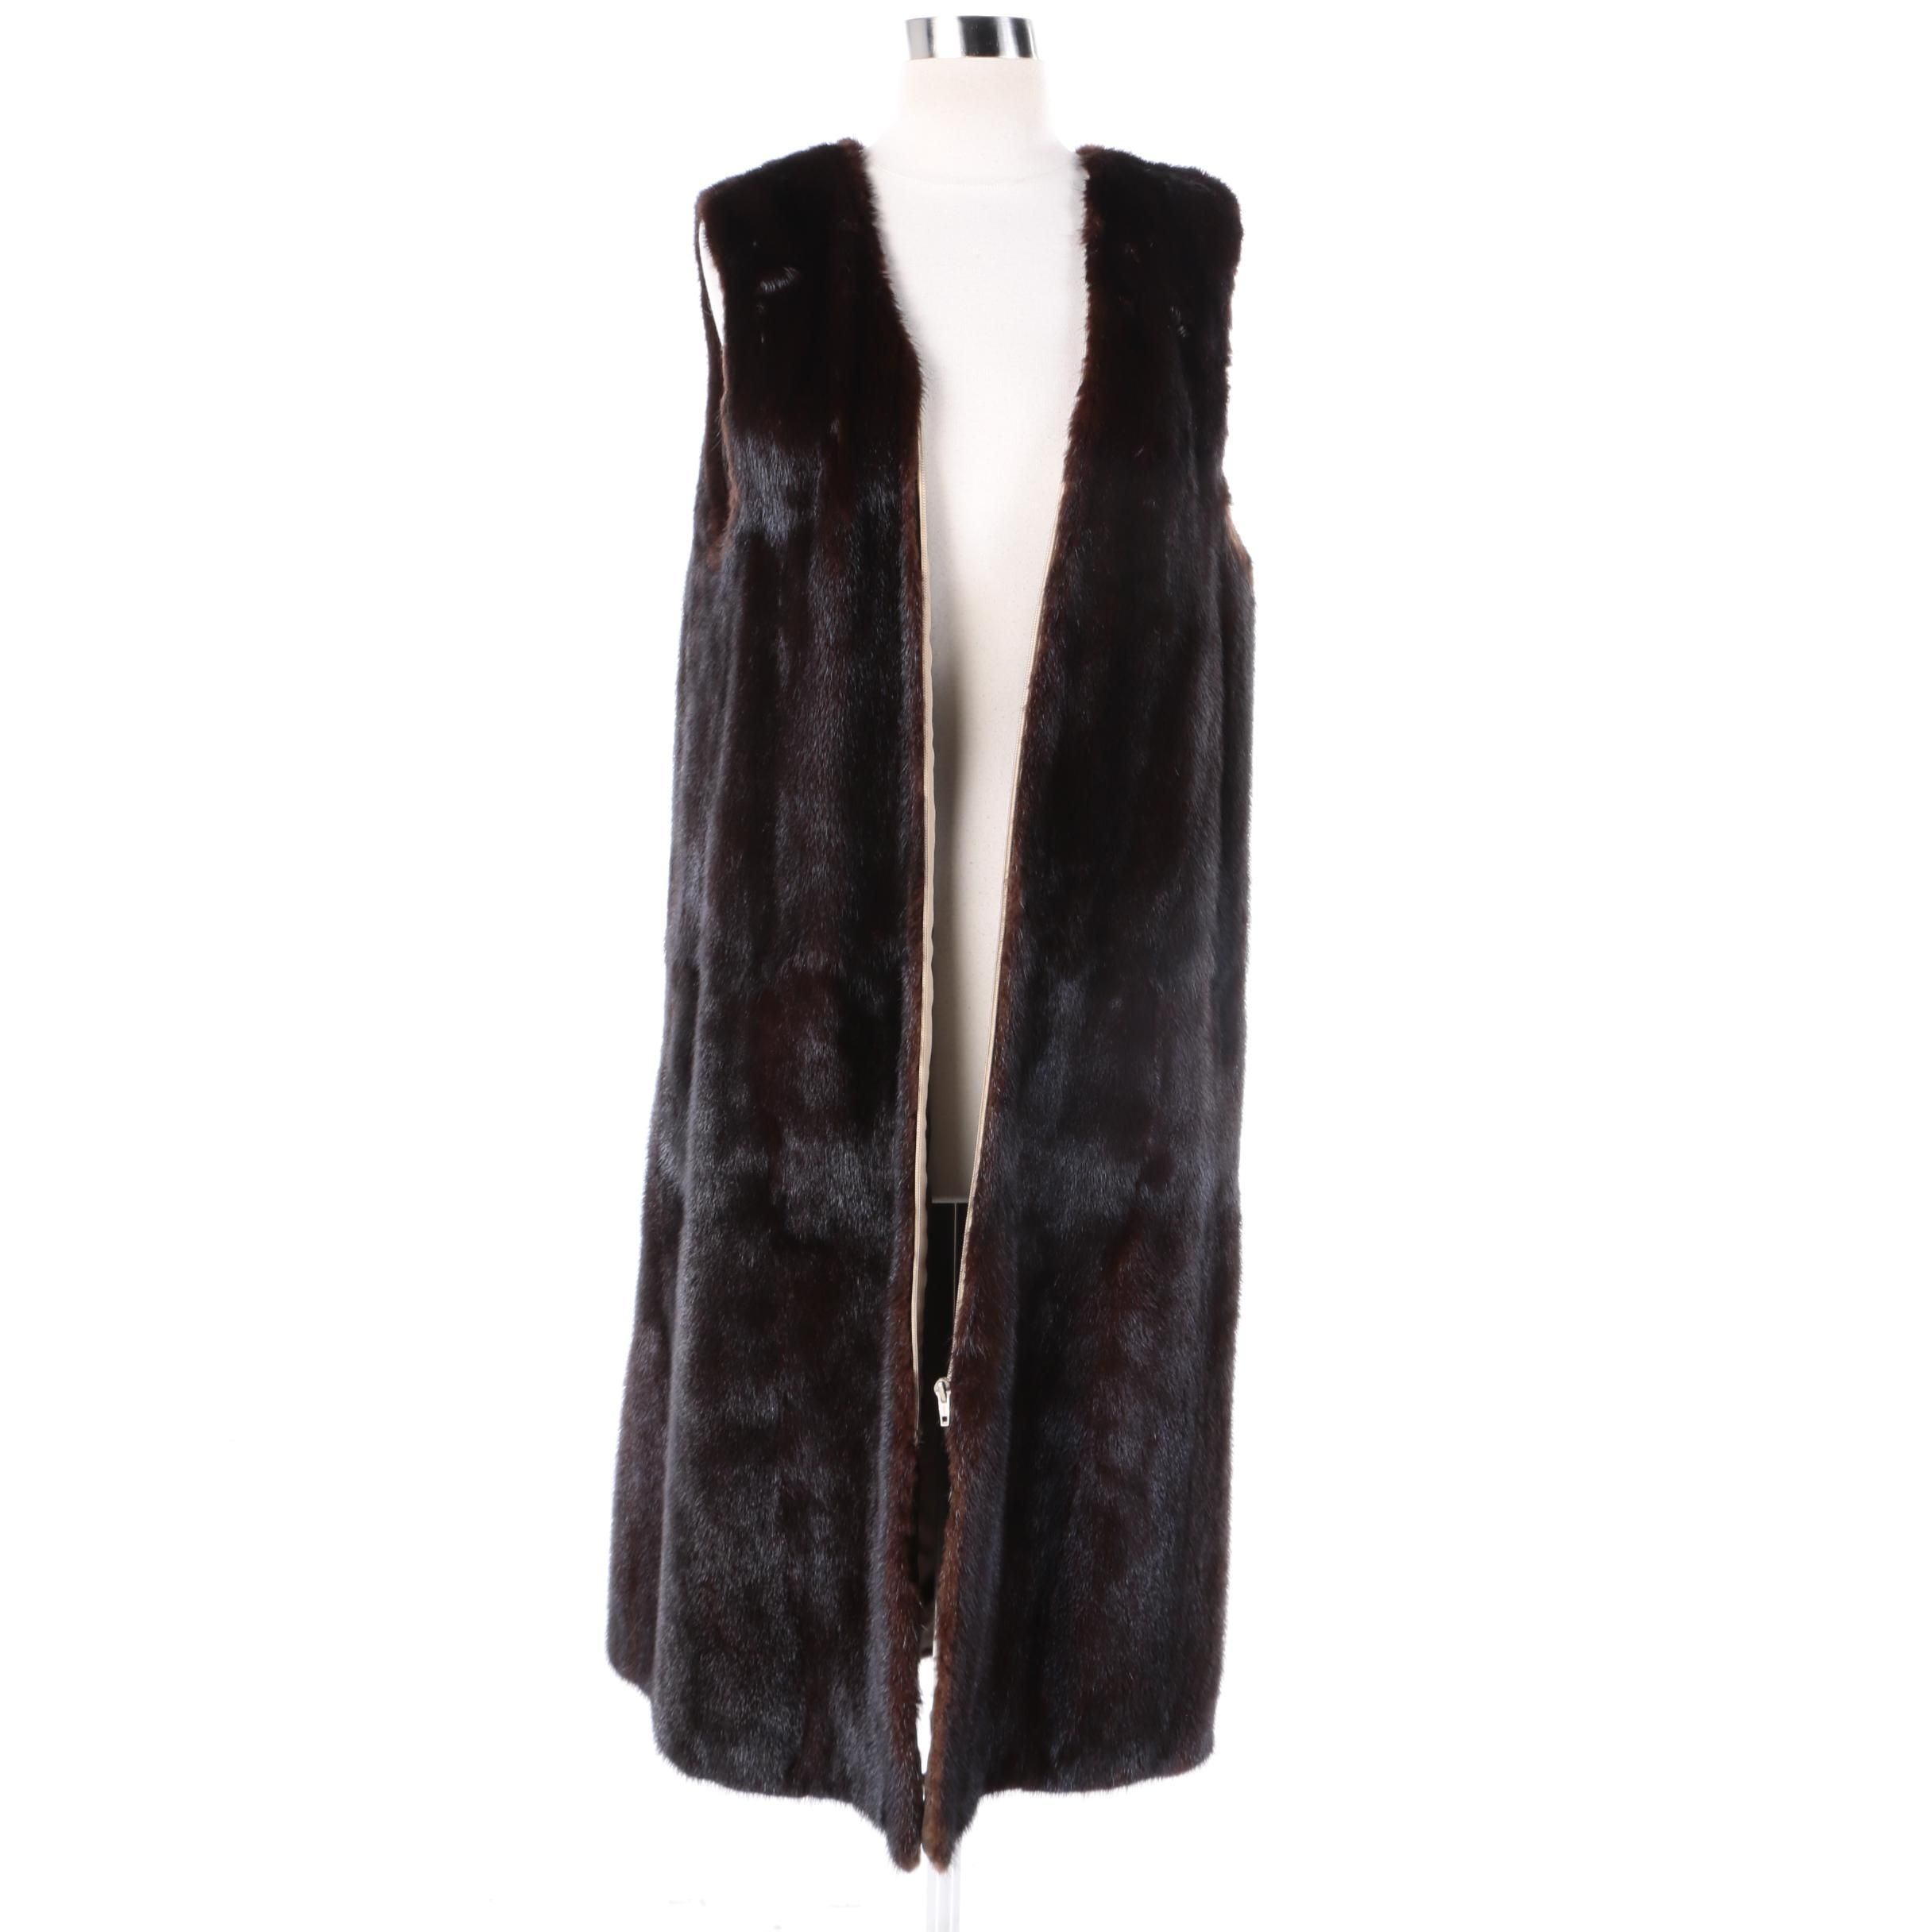 Dark Mahogany Mink Fur Duster Vest or Coat Liner